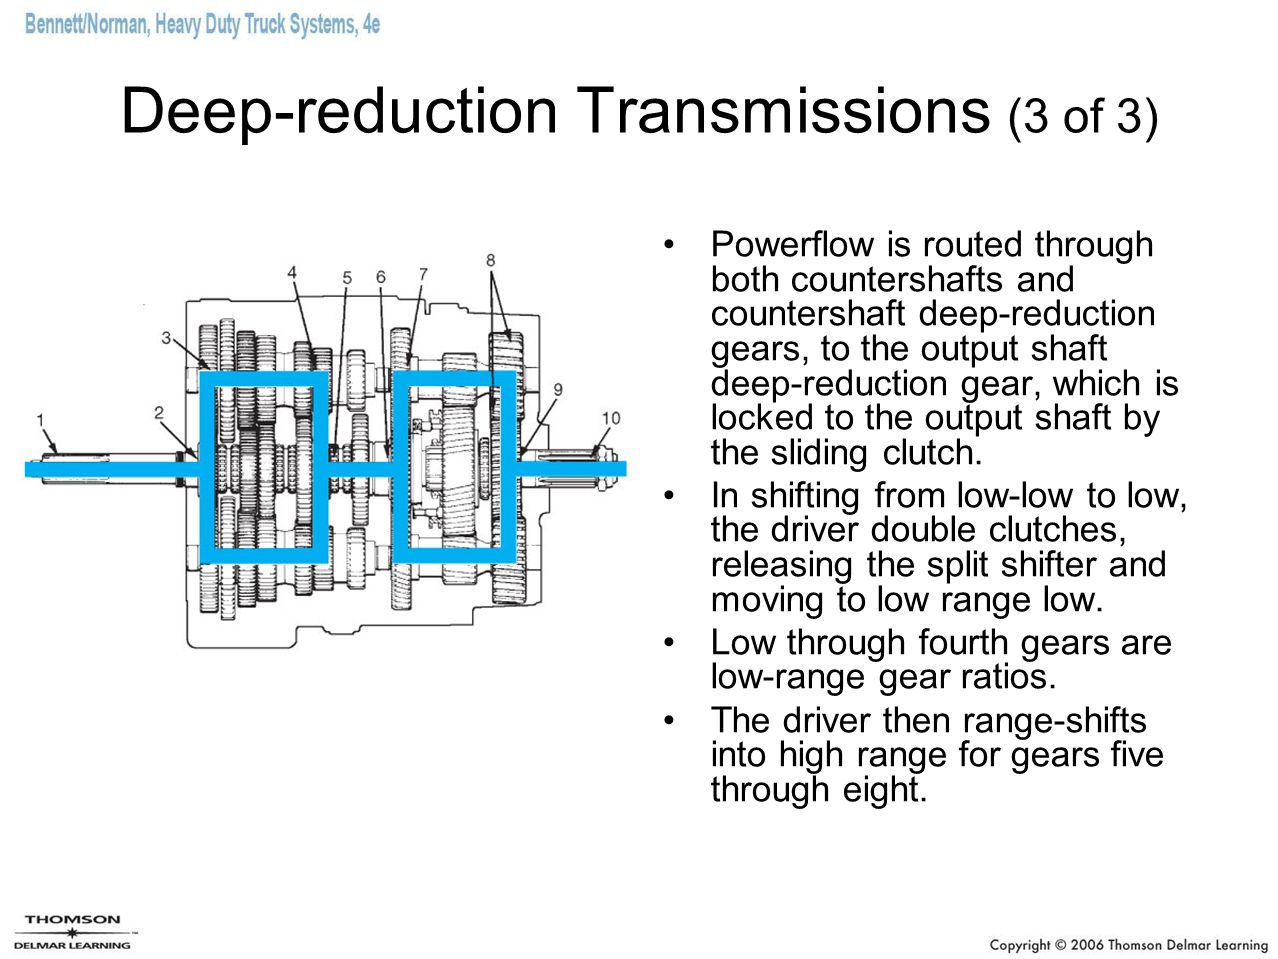 Deep-reduction Transmissions (3 of 3) Powerflow is routed through both countershafts and countershaft deep-reduction gears, to the output shaft deep-r